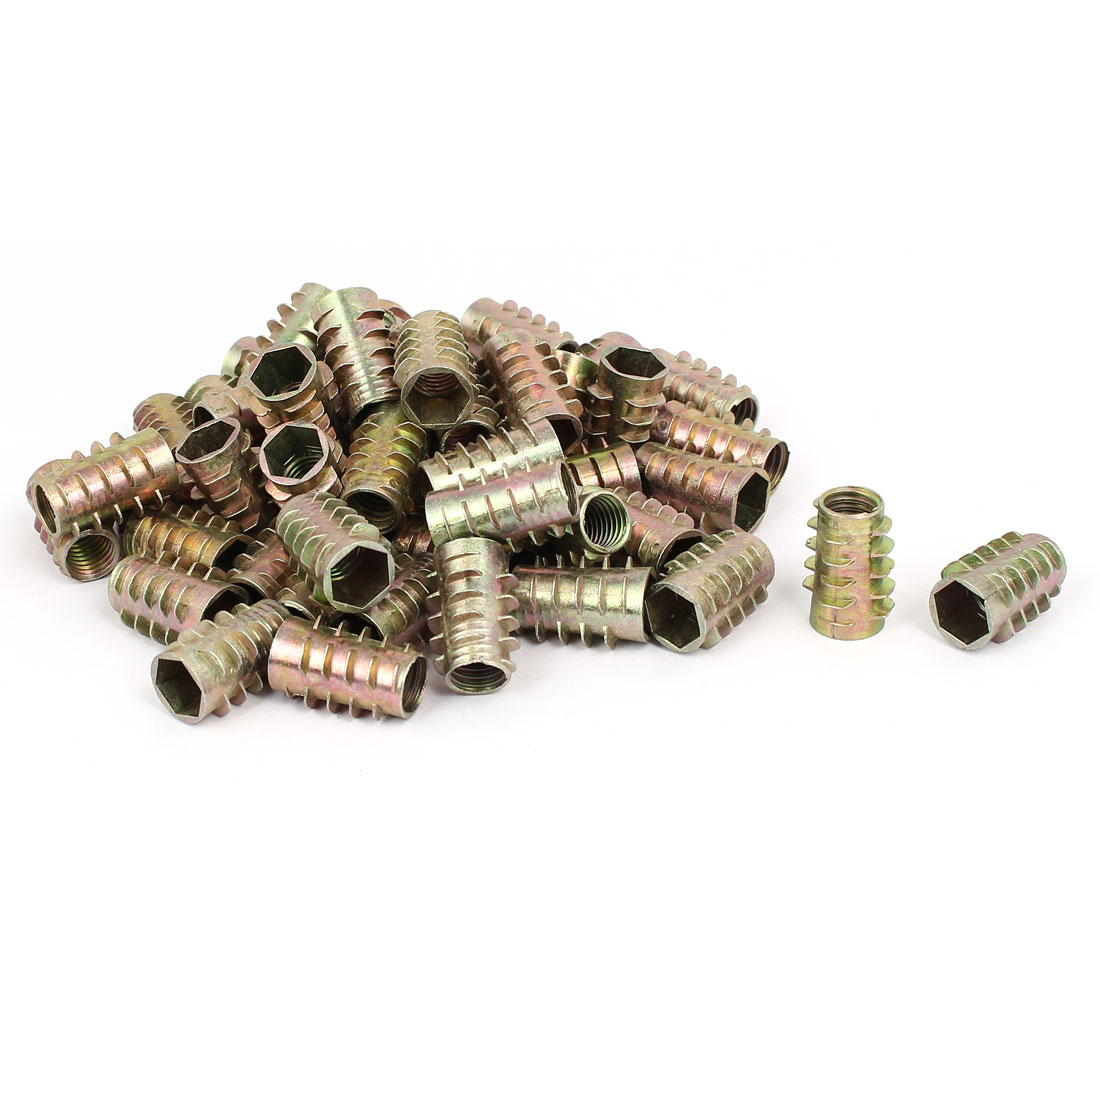 Wood Furniture Zinc Alloy Hex Socket Insert Screws E-Nuts M10x25mm 50pcs